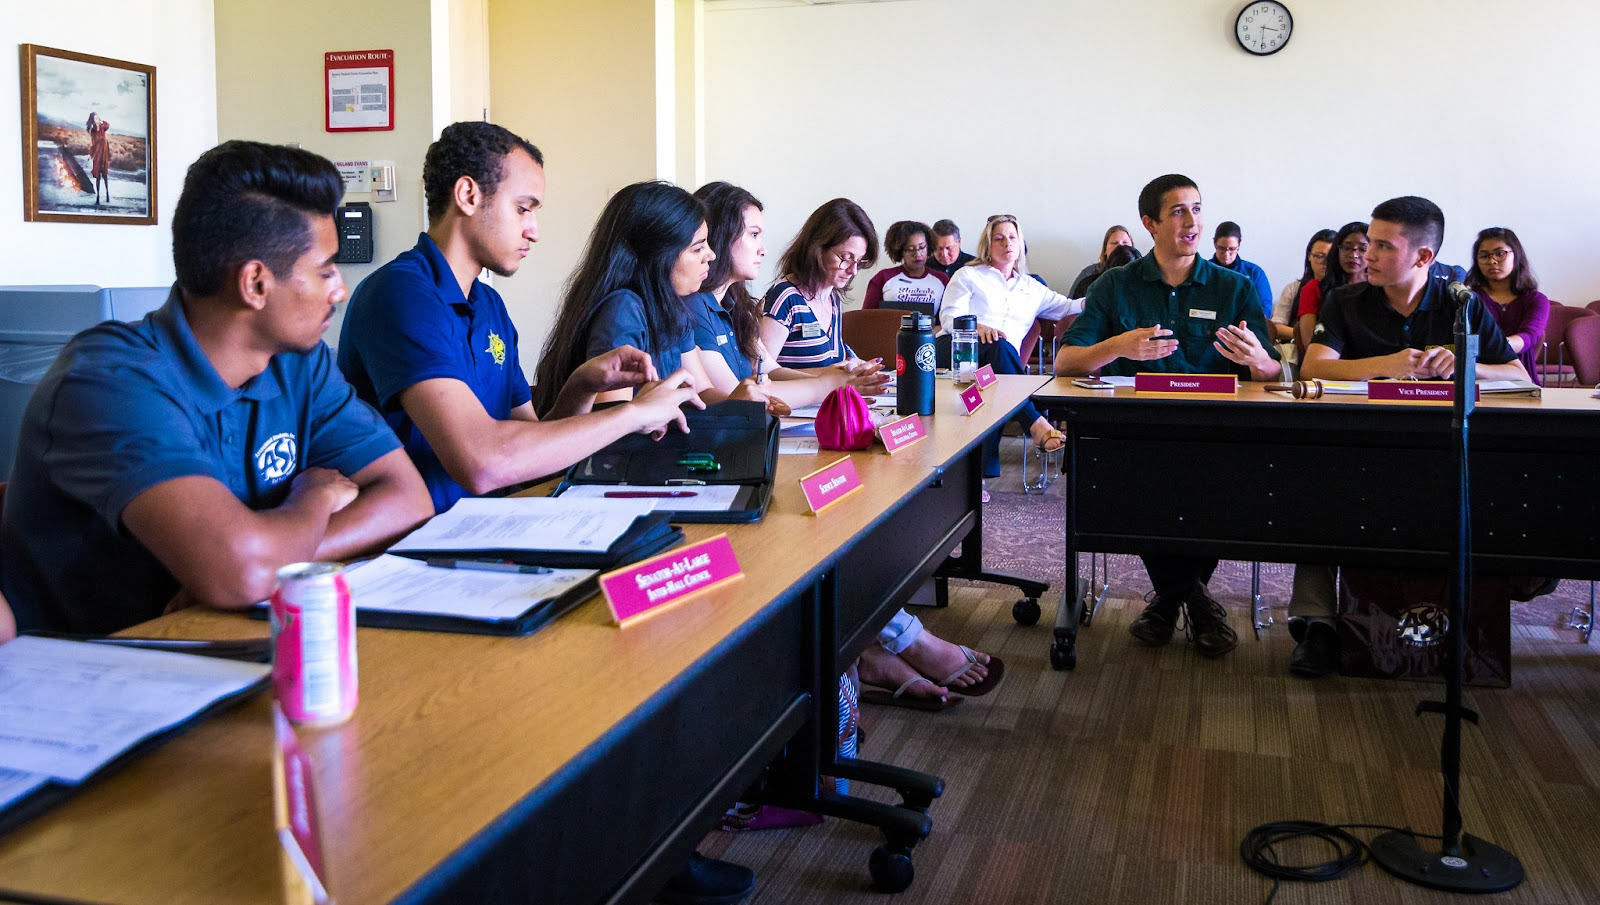 ASI President Farris Hamza leads a Student Government meeting